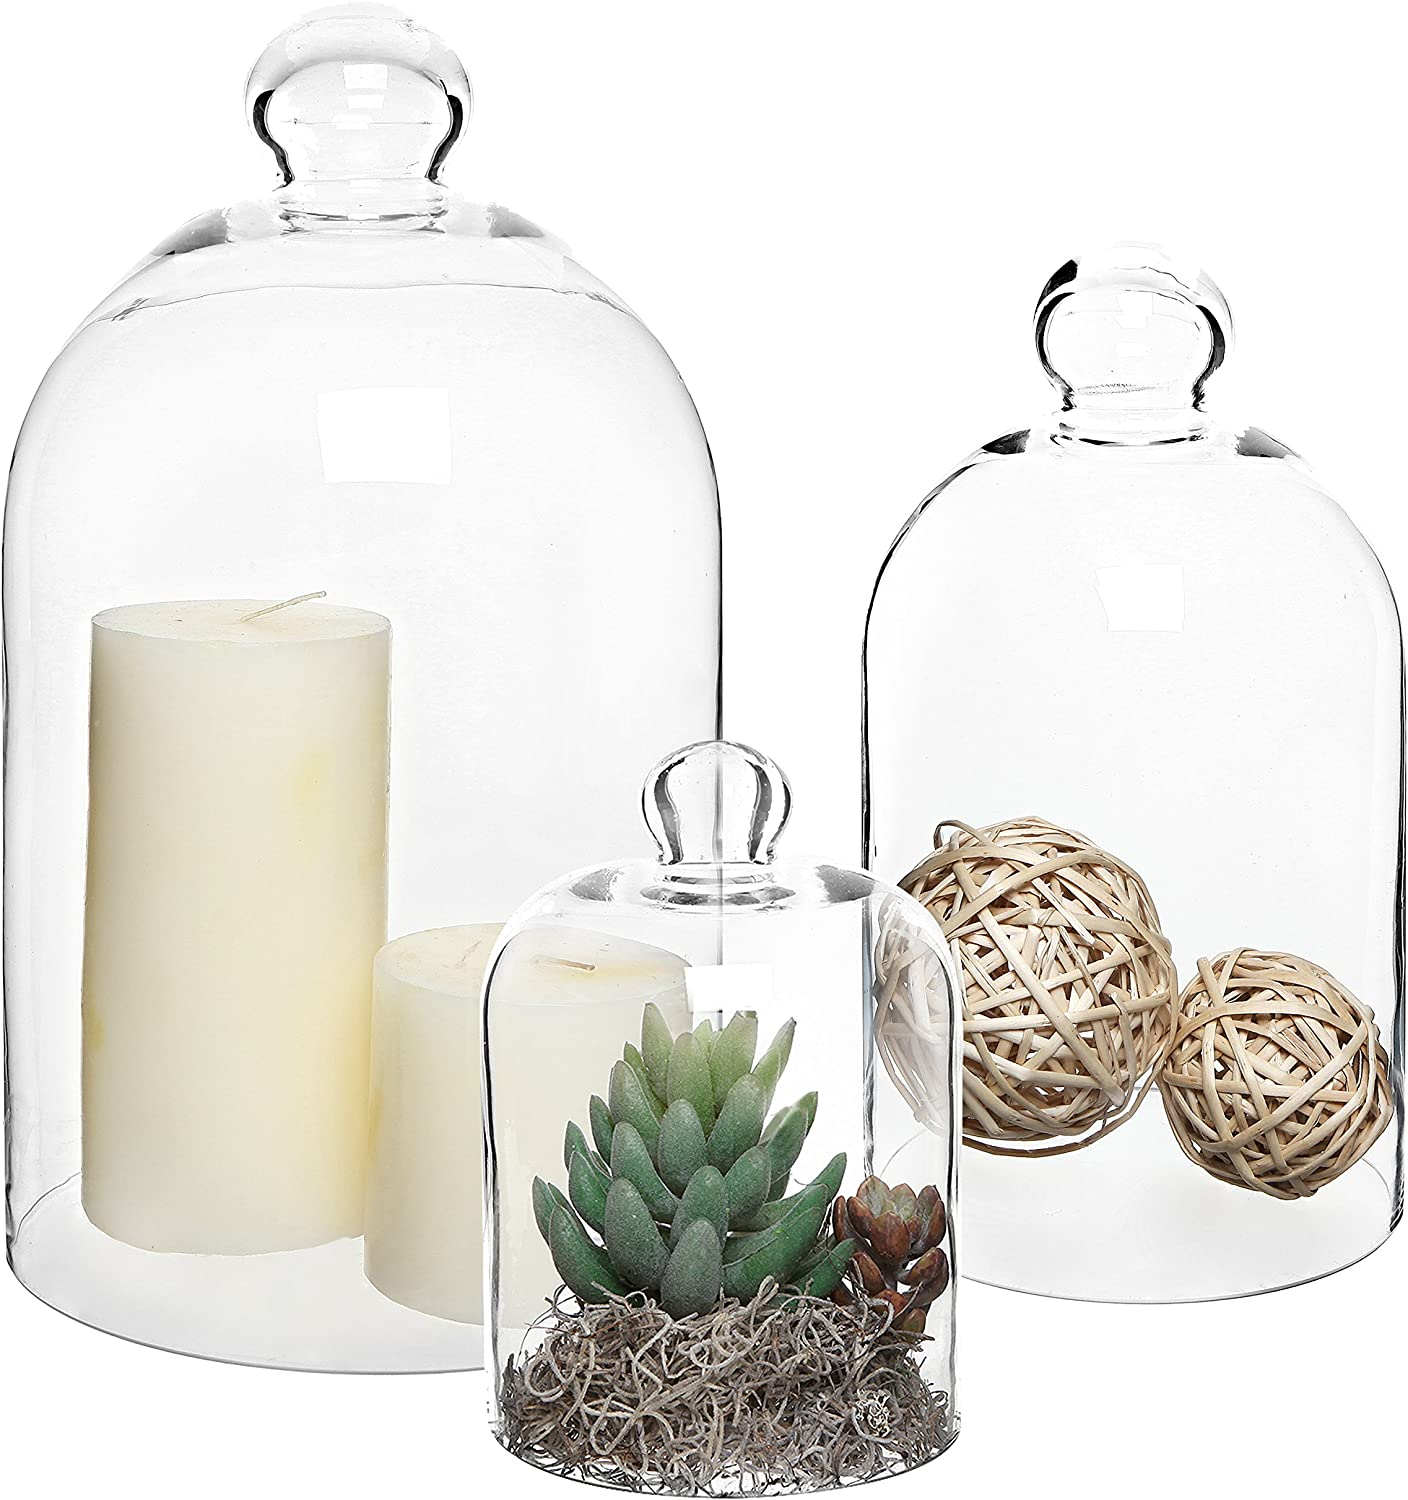 MyGift Set of 3 Decorative Clear Glass Apothecary Cloche Bell Jars Centerpiece Dome Display